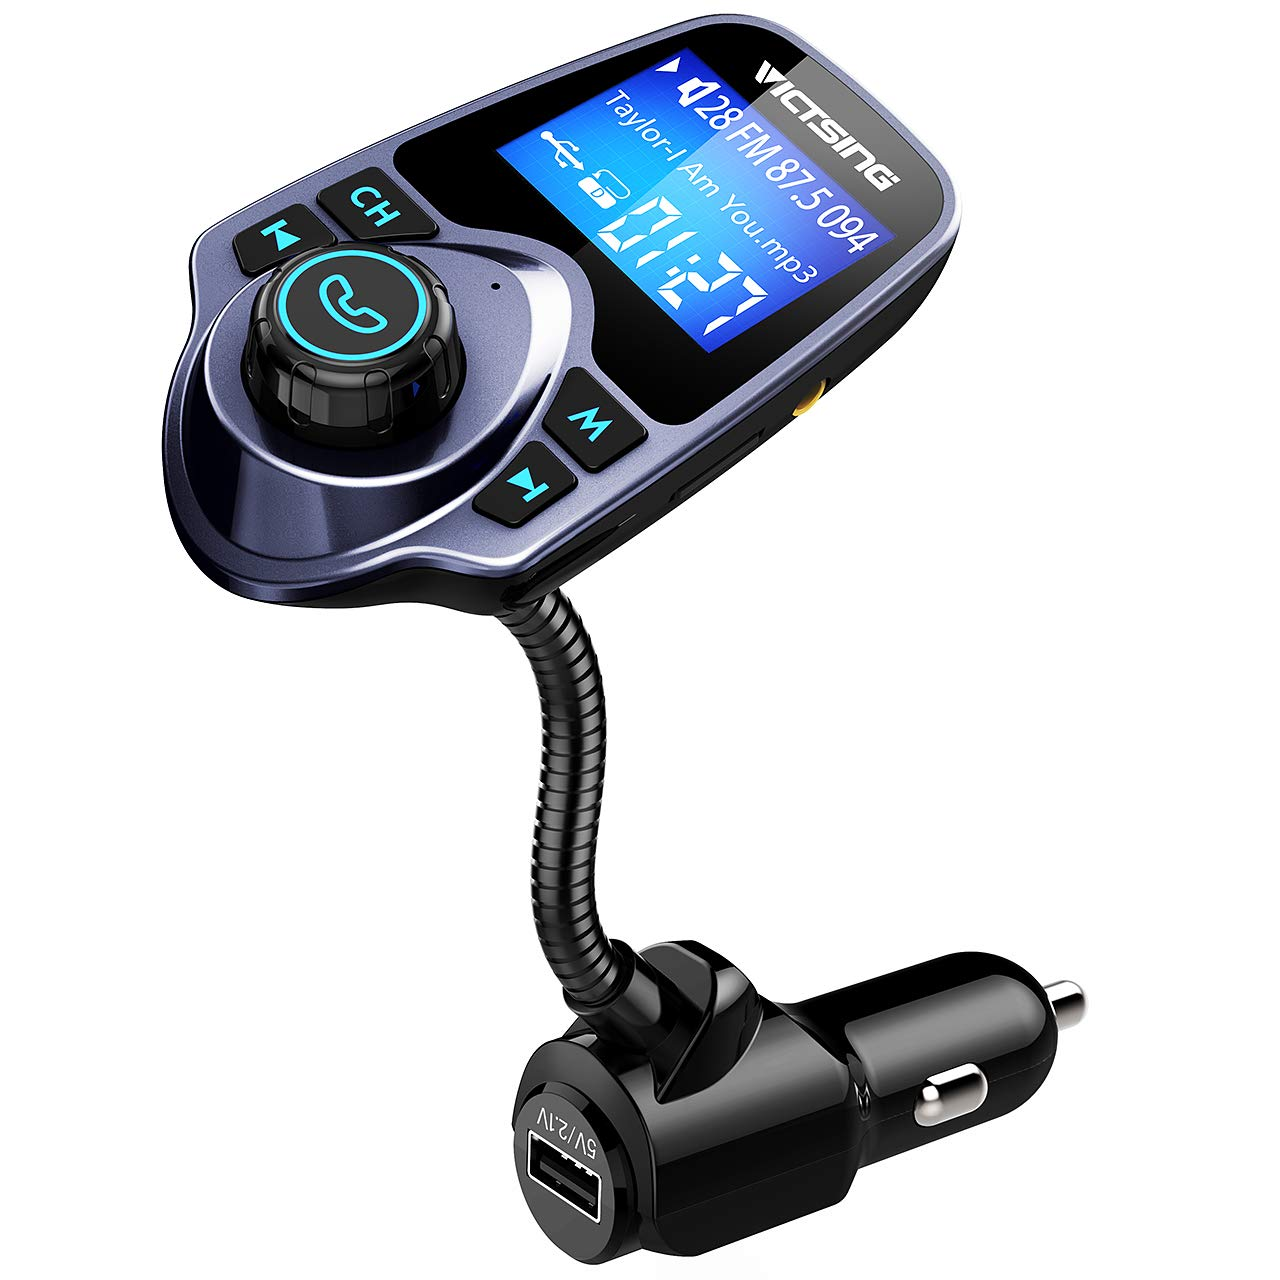 VicTsing Bluetooth FM Transmitter, Wireless in-Car Radio Transmitter Adapter /w USB Port, Support AUX Input 1.44 Inch Display TF Card Slot - Blue